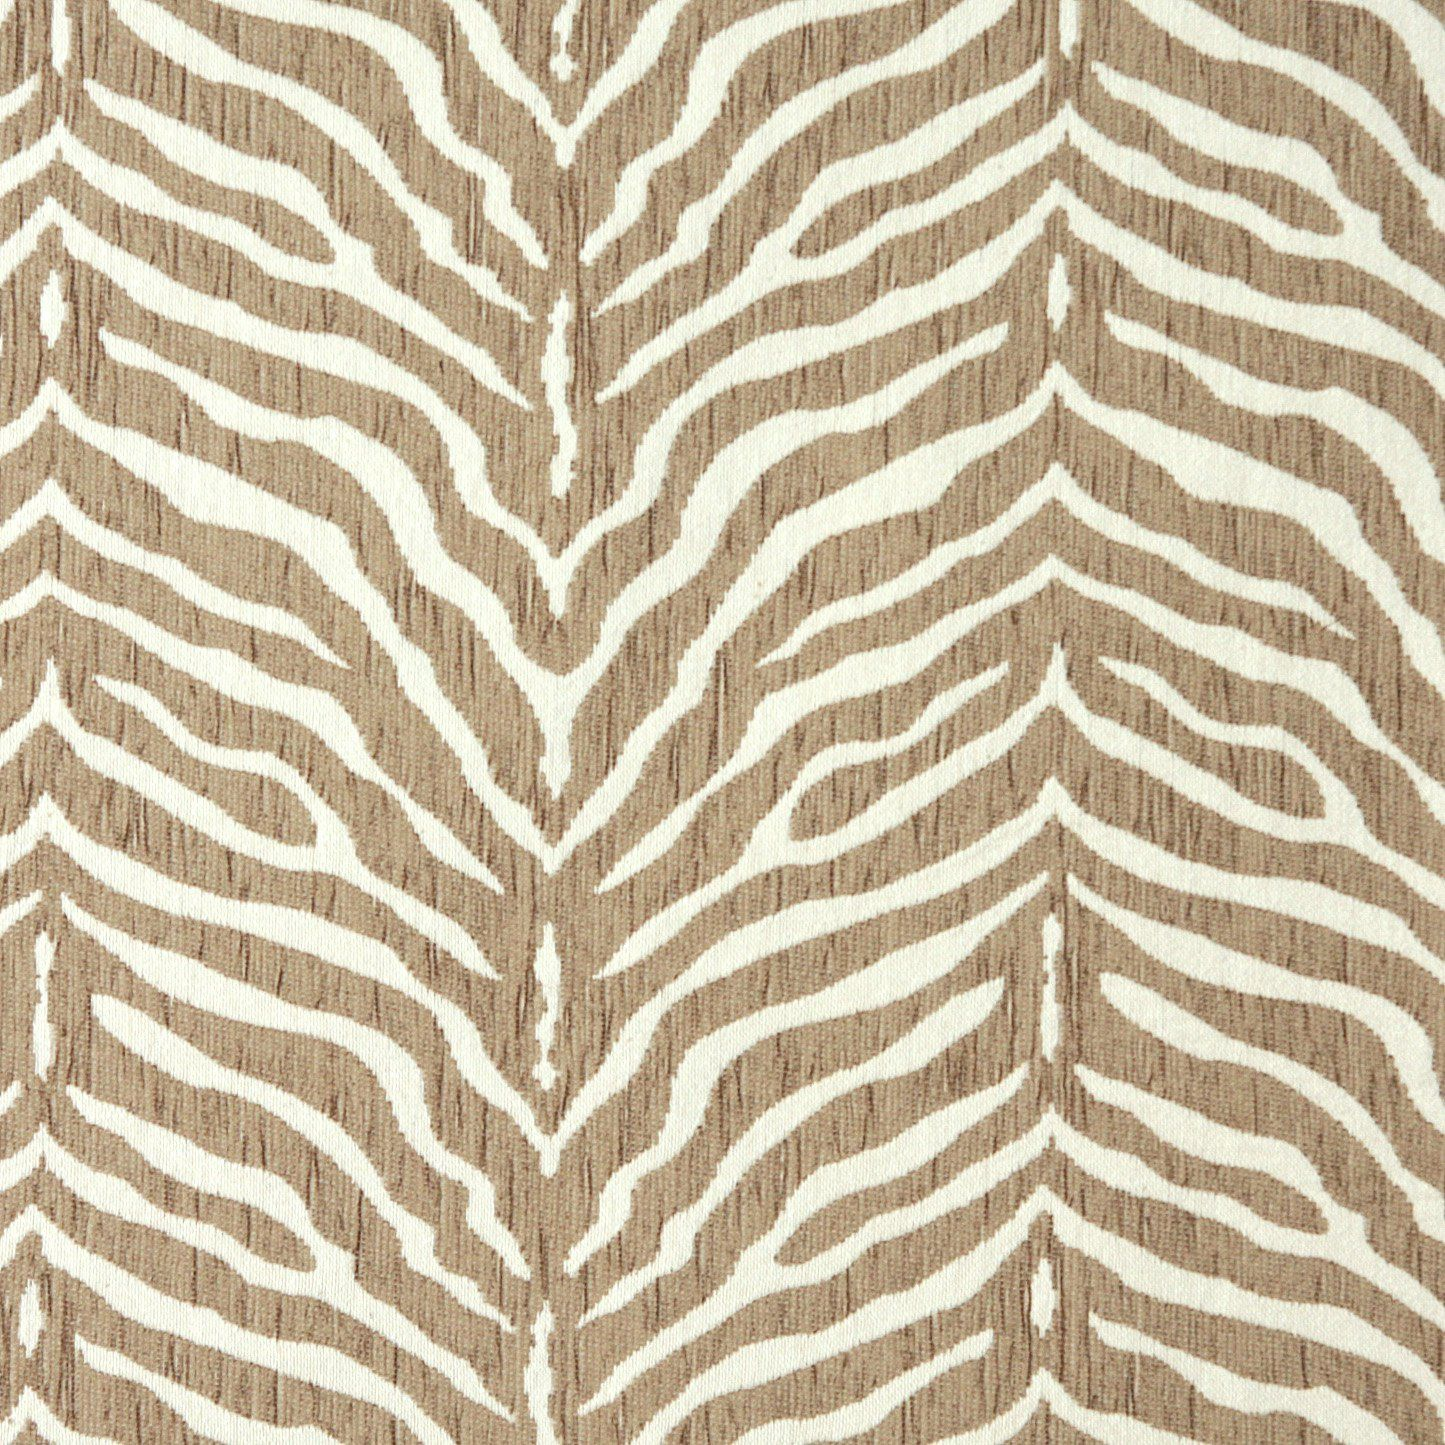 E190 Beige Zebra Pattern Textured Woven Chenille Upholstery Fabric By The Yard Contemporary Upholstery Fabric Upholstery Fabric Upholstery